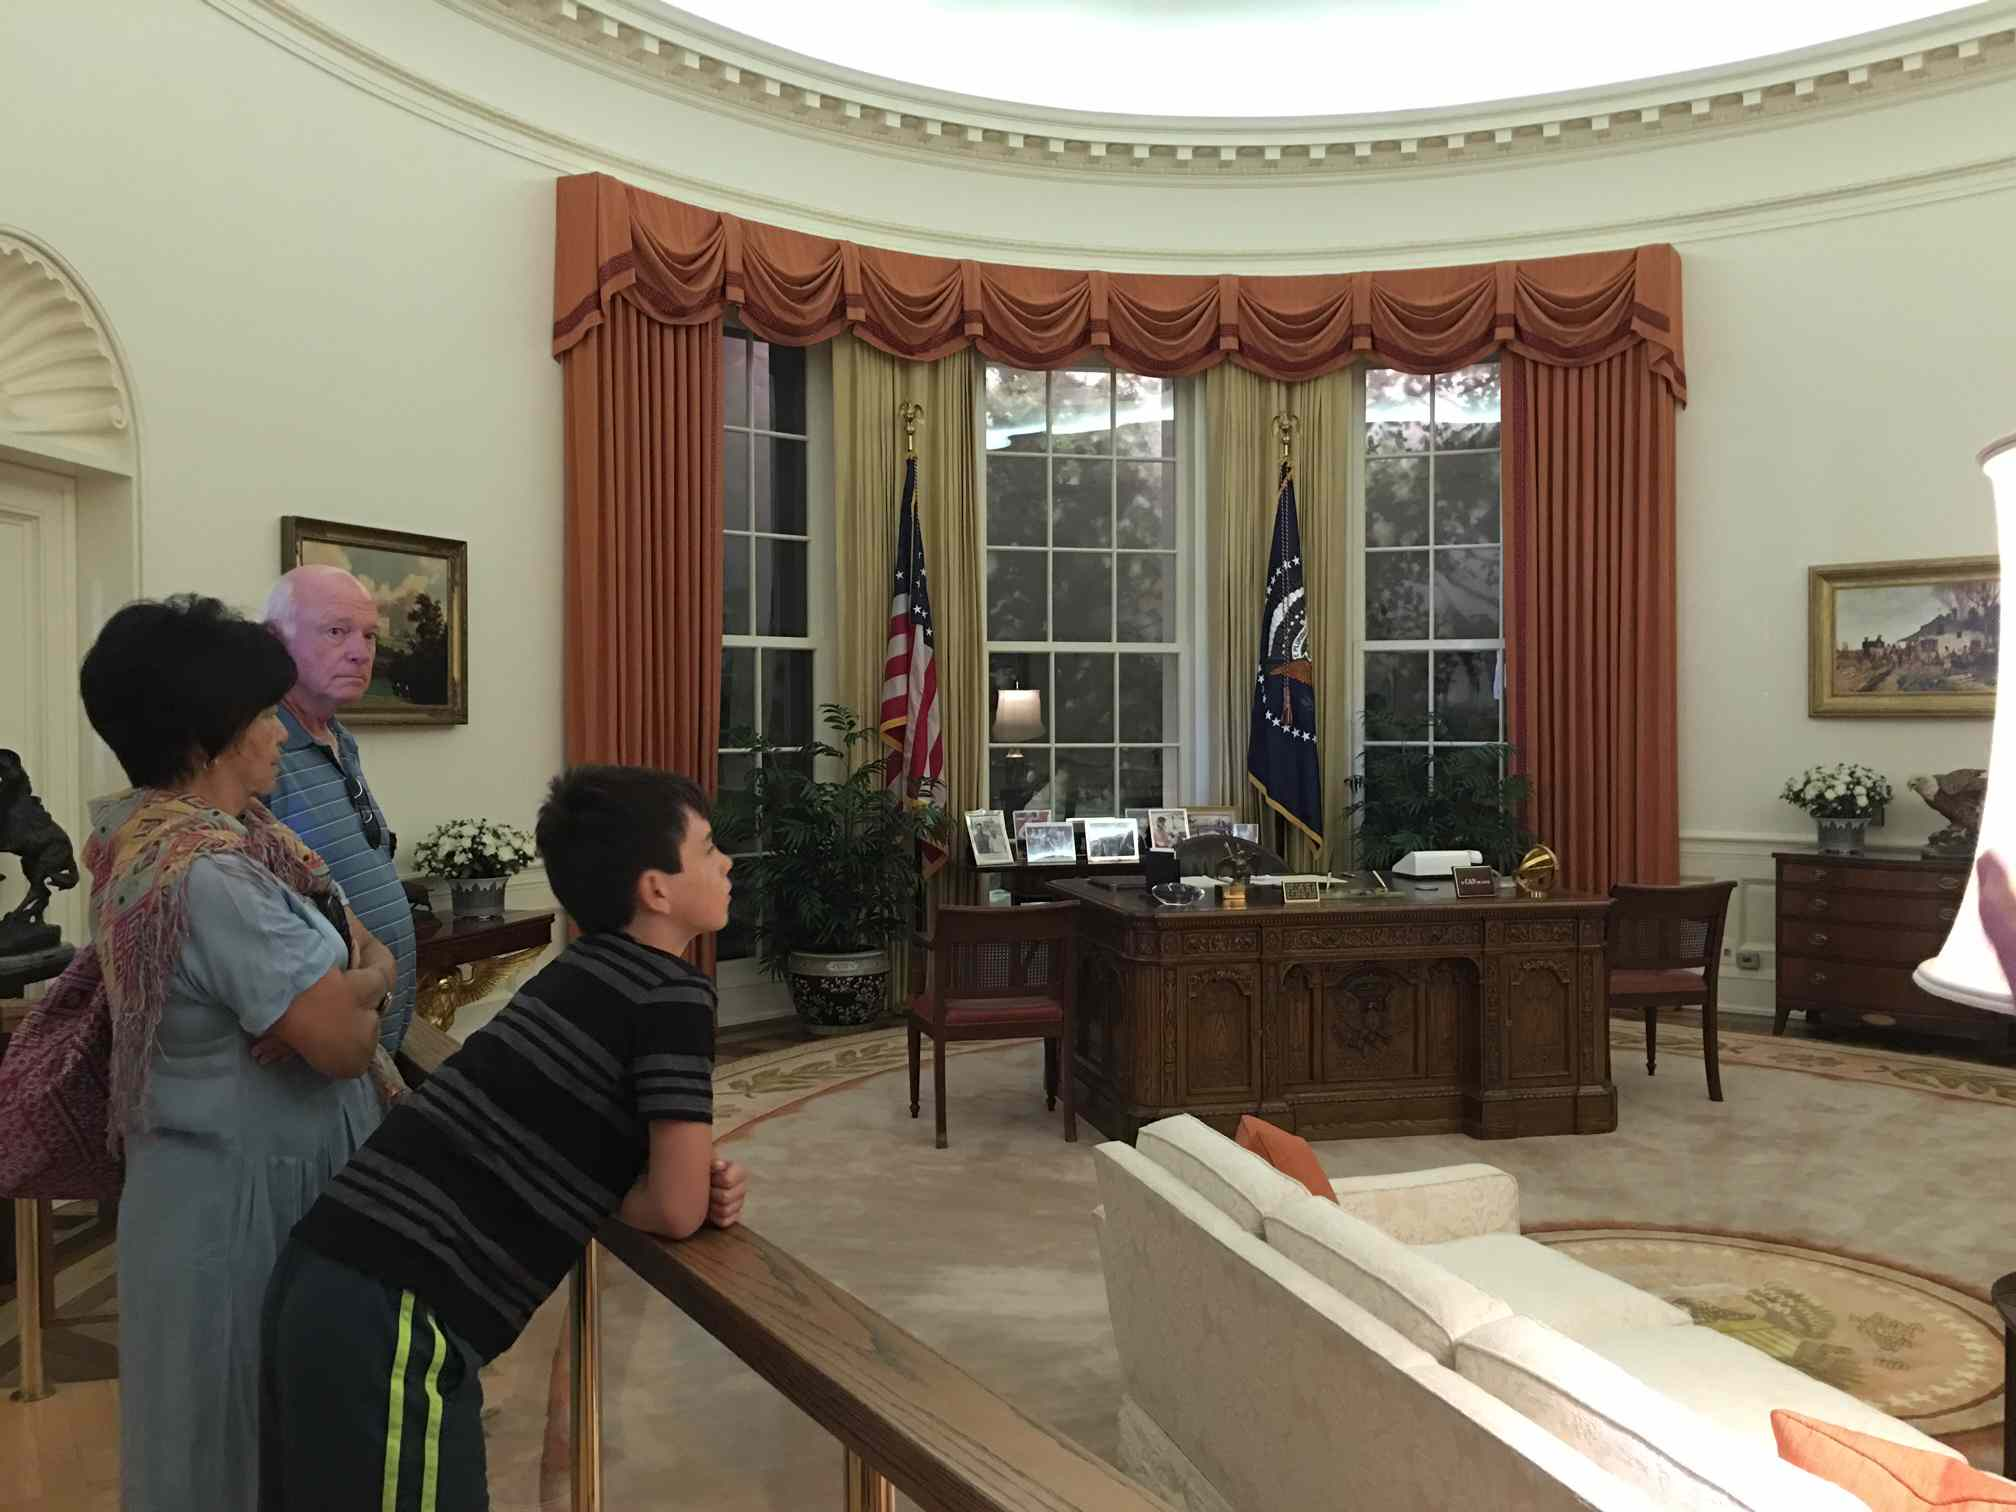 reagan oval office. Reagan Oval Office ,